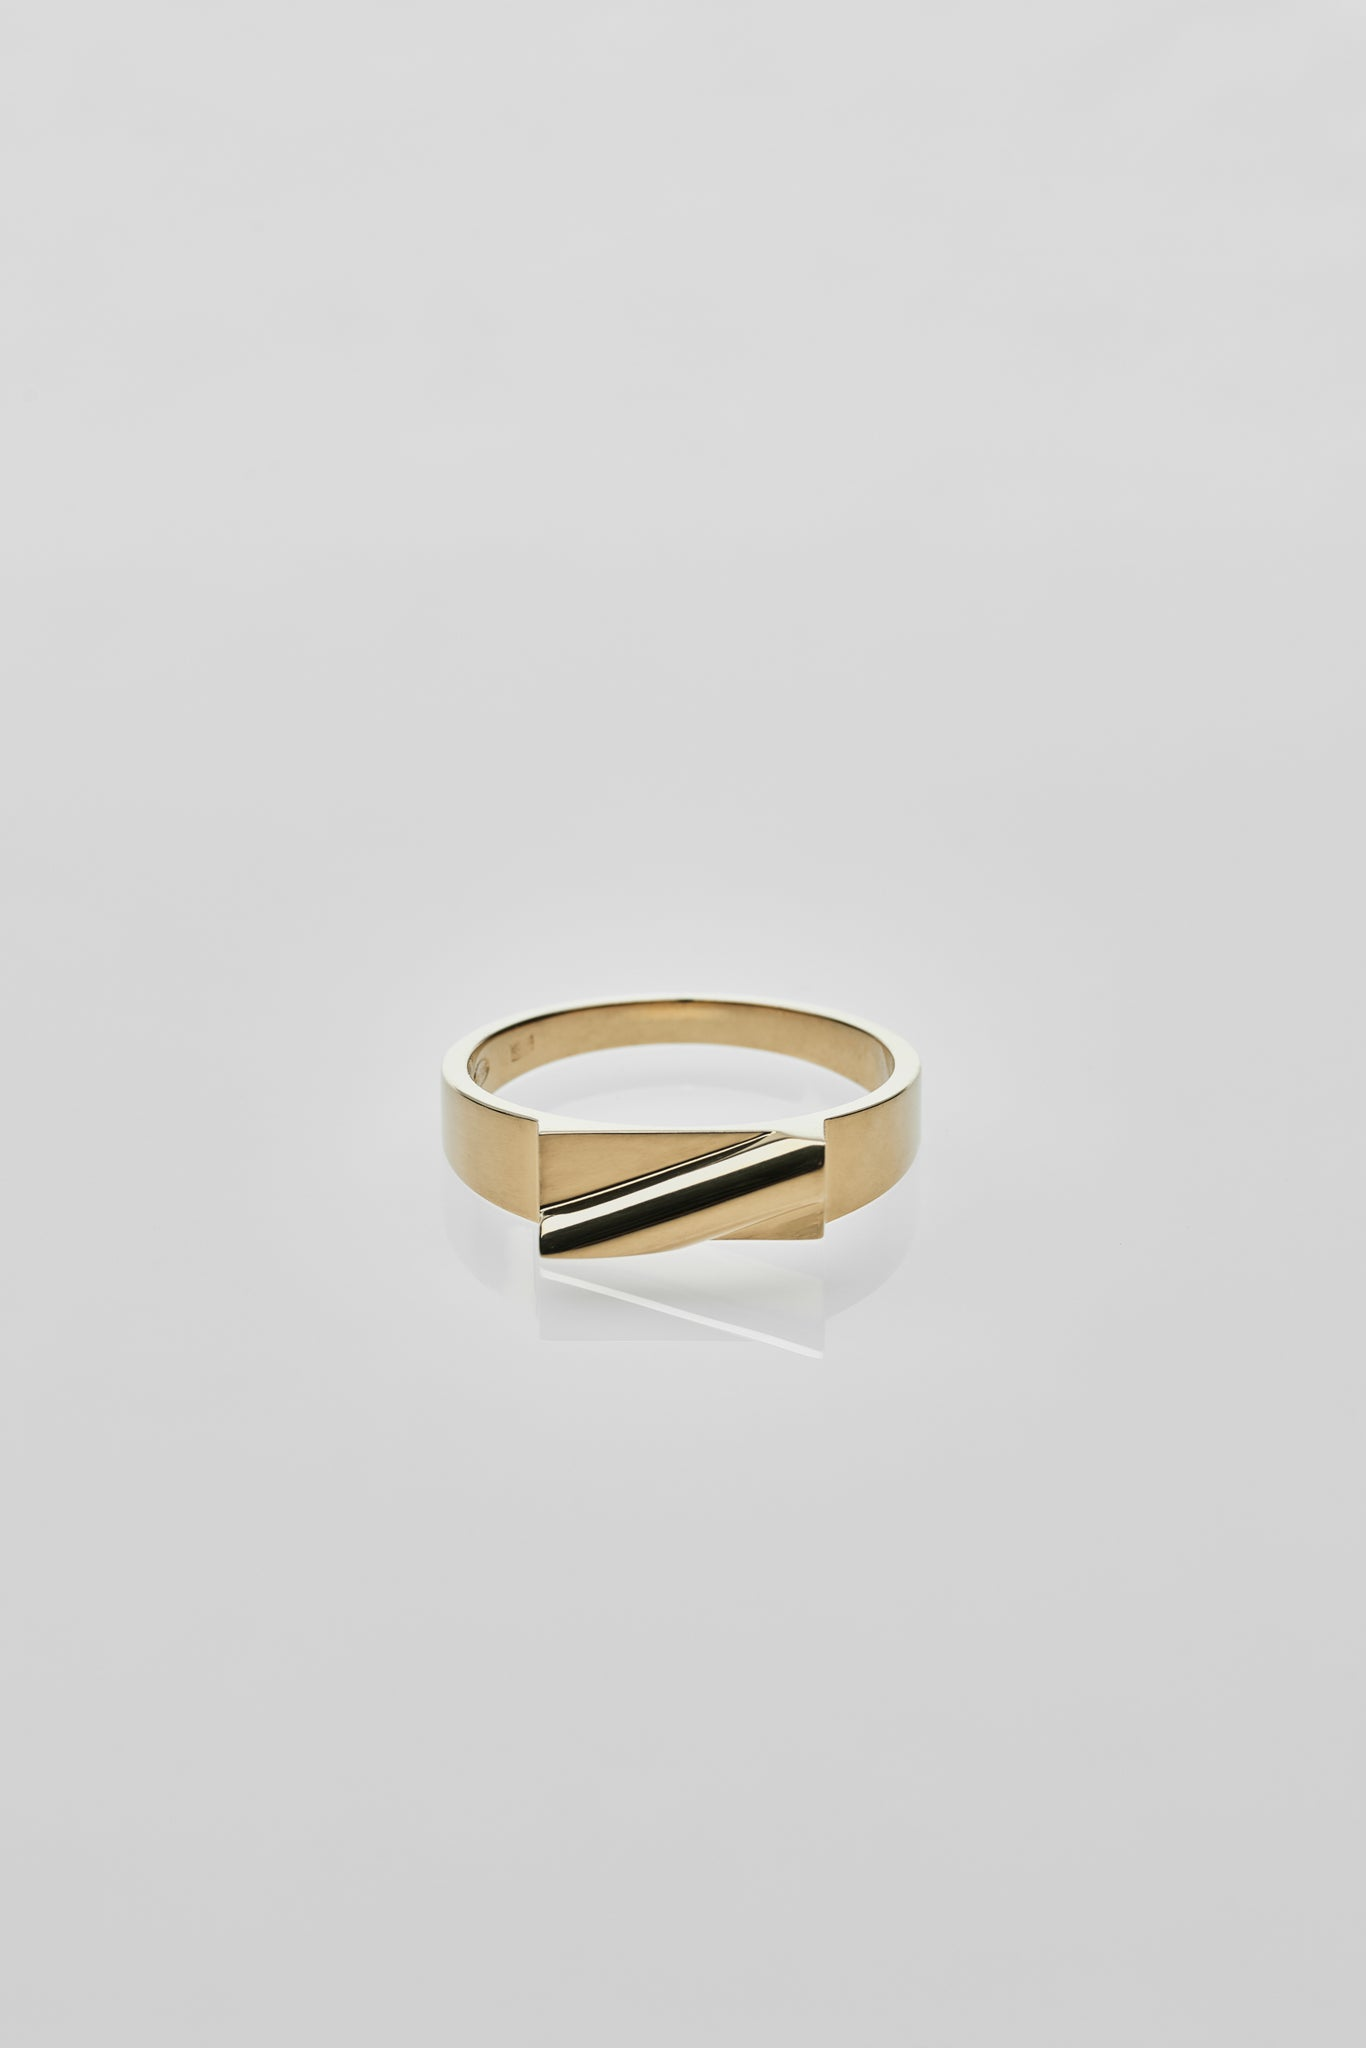 Pei Ring Gold - Arte Antwerp